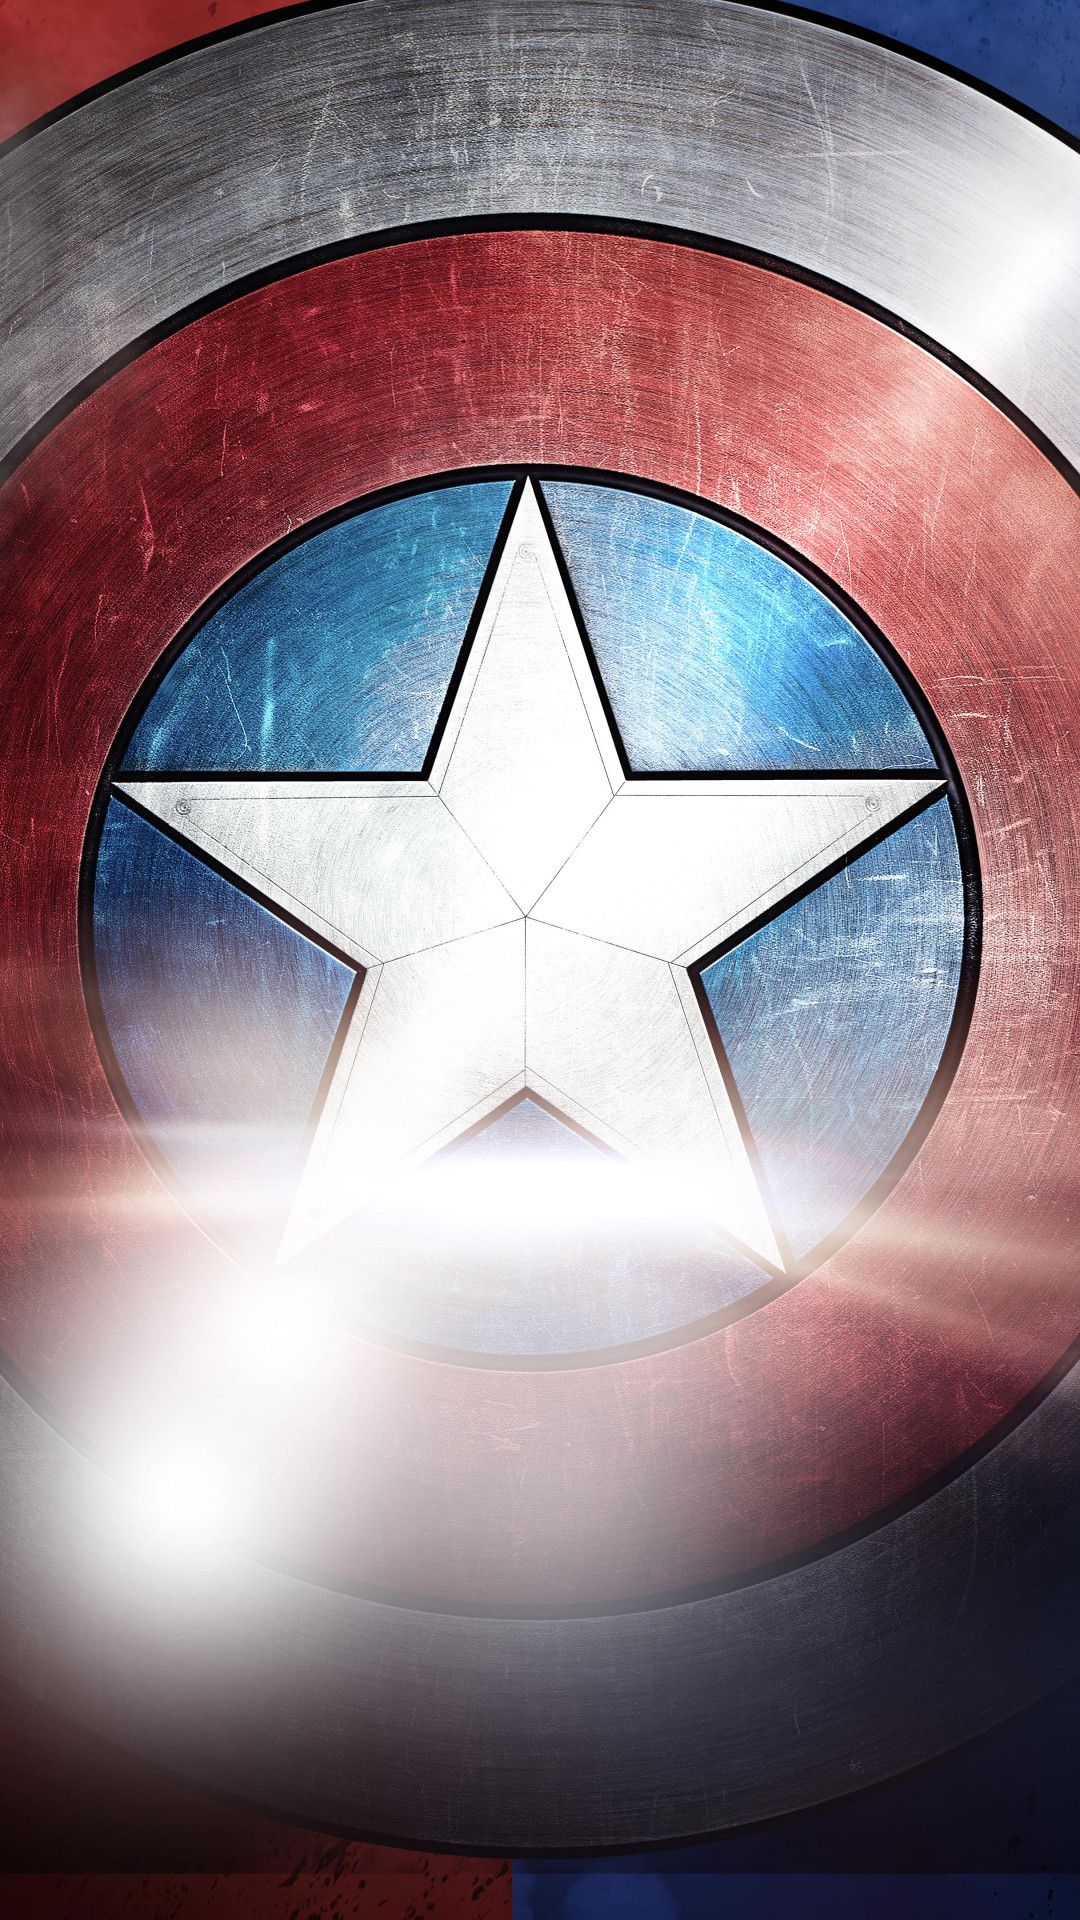 1080x1920  Symmetry, Circle, Graphics, Marvel Comics, Captain Americas Shield  Wallpaper for IPhone 6S+/7+/8+